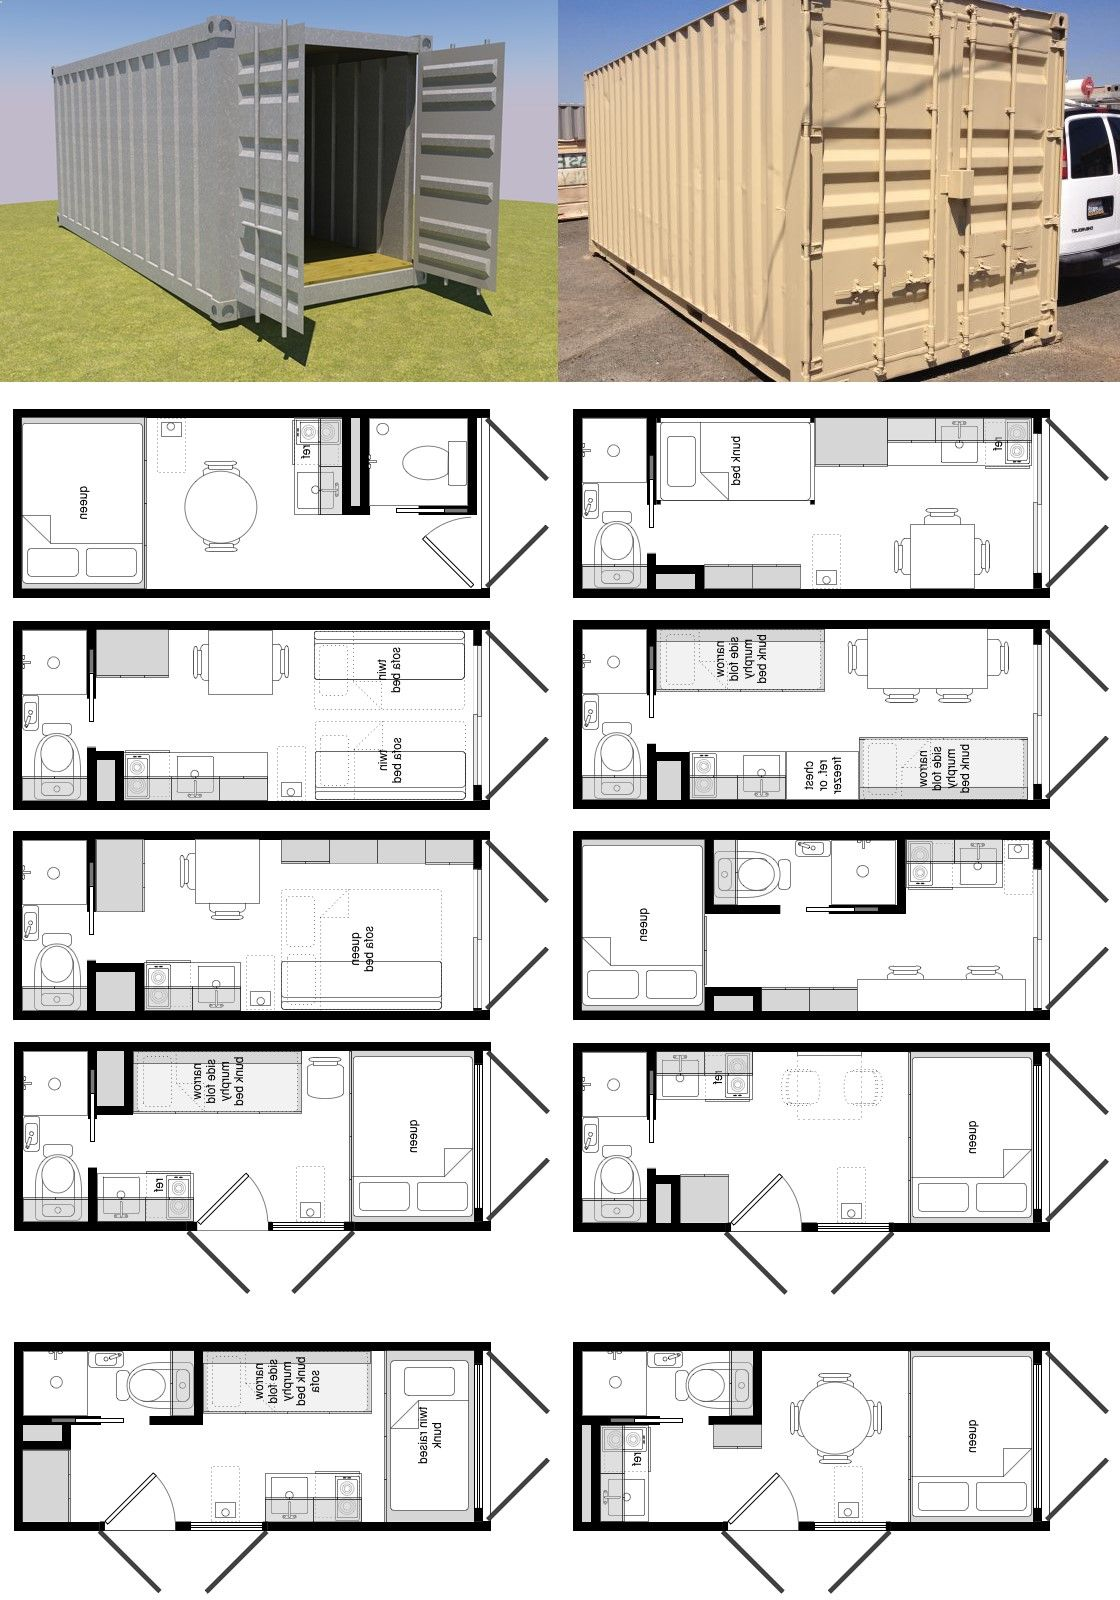 Container House 20 Foot Shipping Container Floor Plan Brainstorm Tiny House Living Floor Shipping Container House Plans Container House Cargo Container Homes